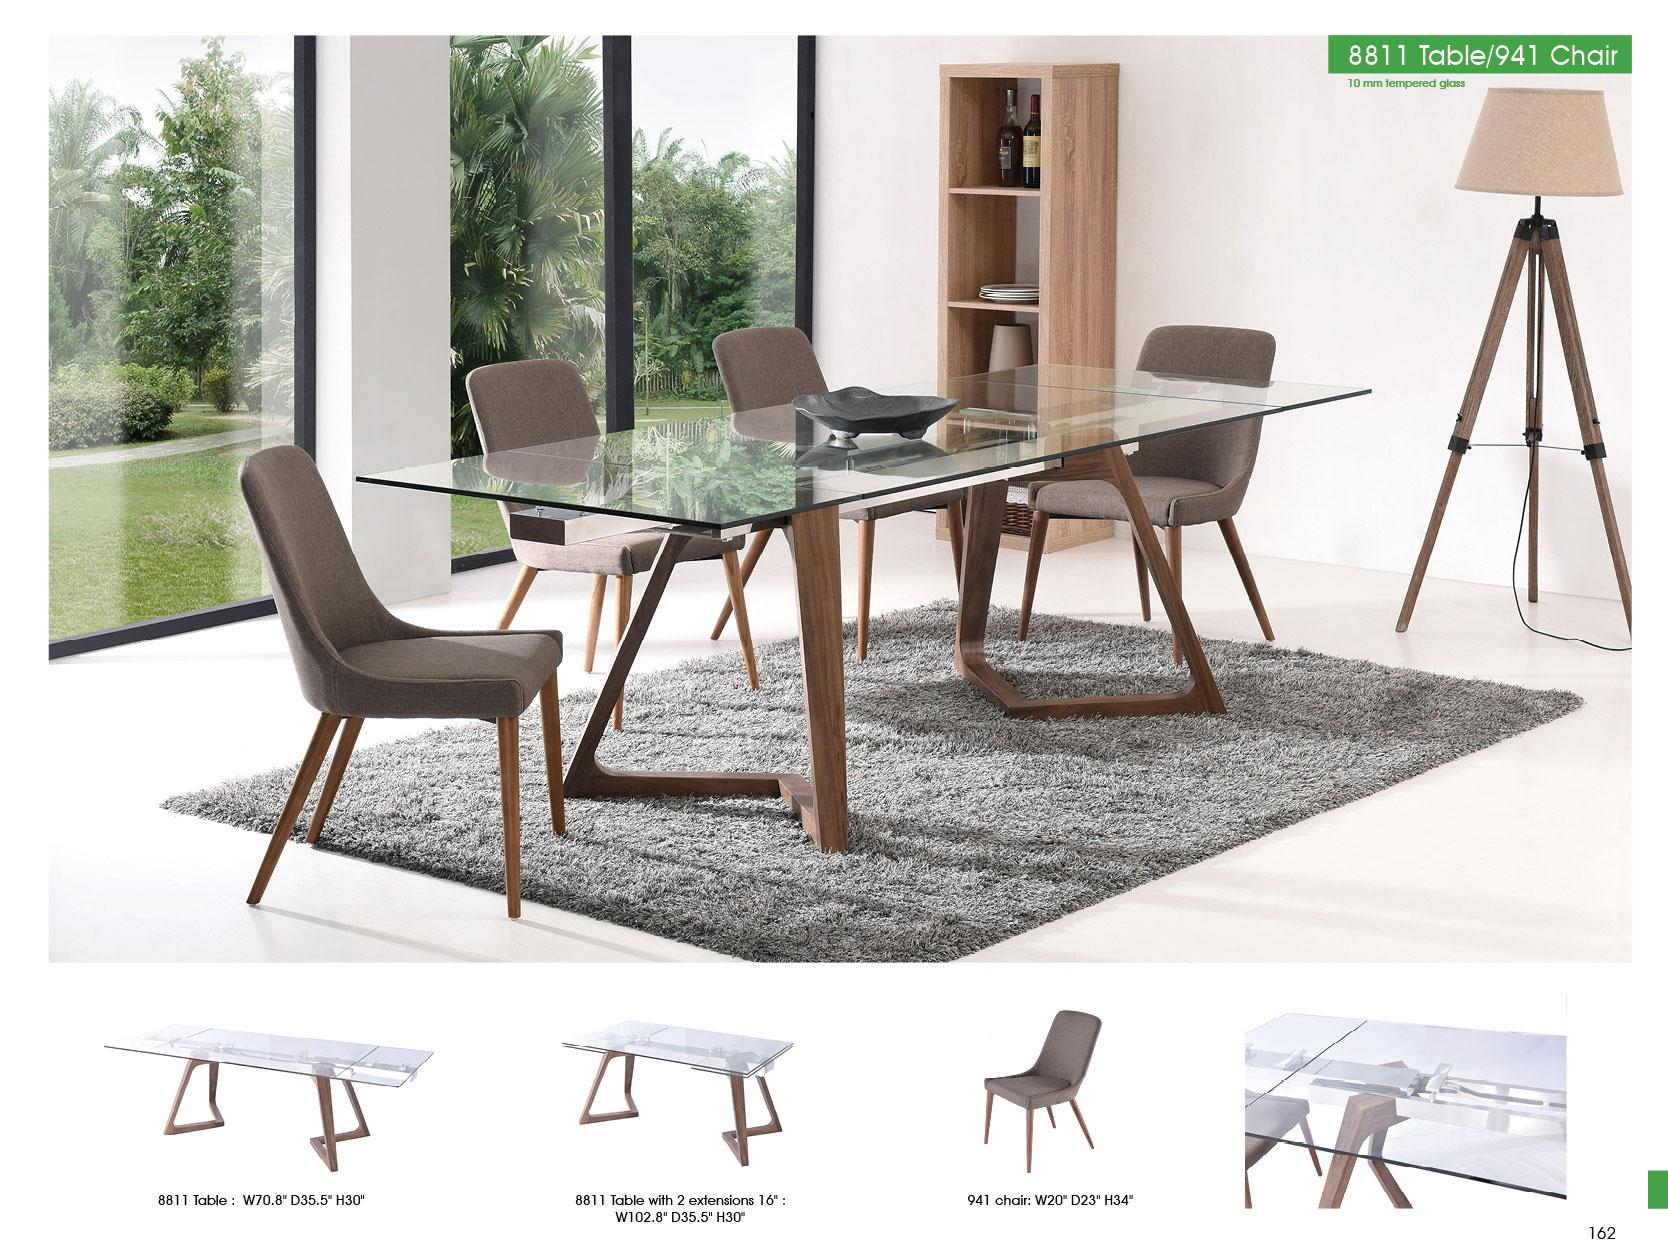 Oak Retro Dining Table W Extension 941 Chairs Set 7pcs Made In Italy Esf 8811 8811 Dt 941 Dc Dining Set 7